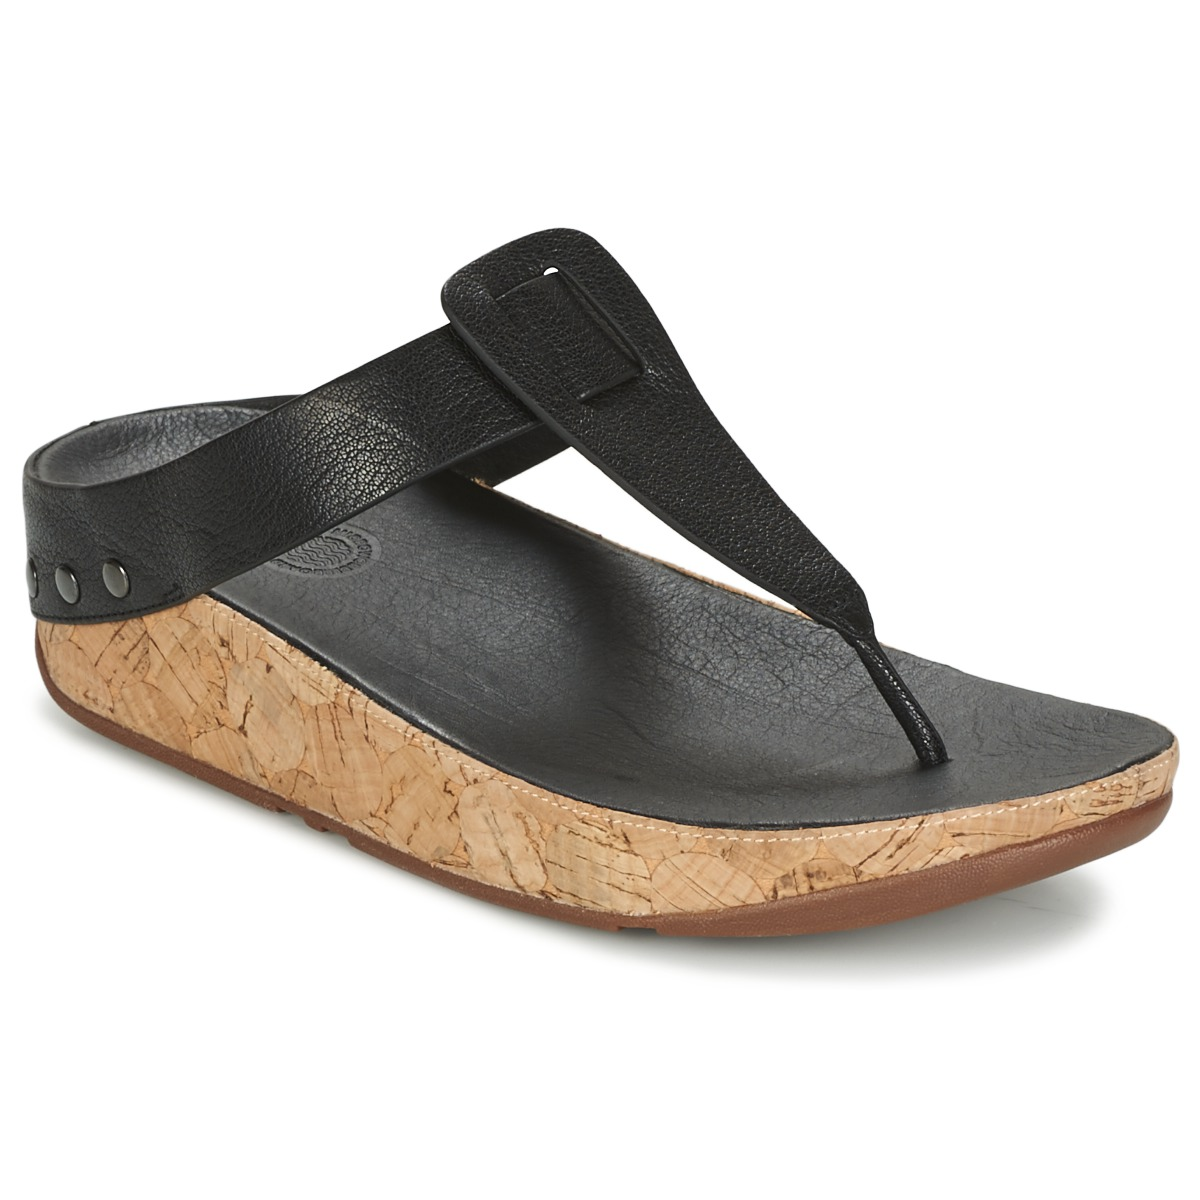 Fitflop Shoes Store Locator